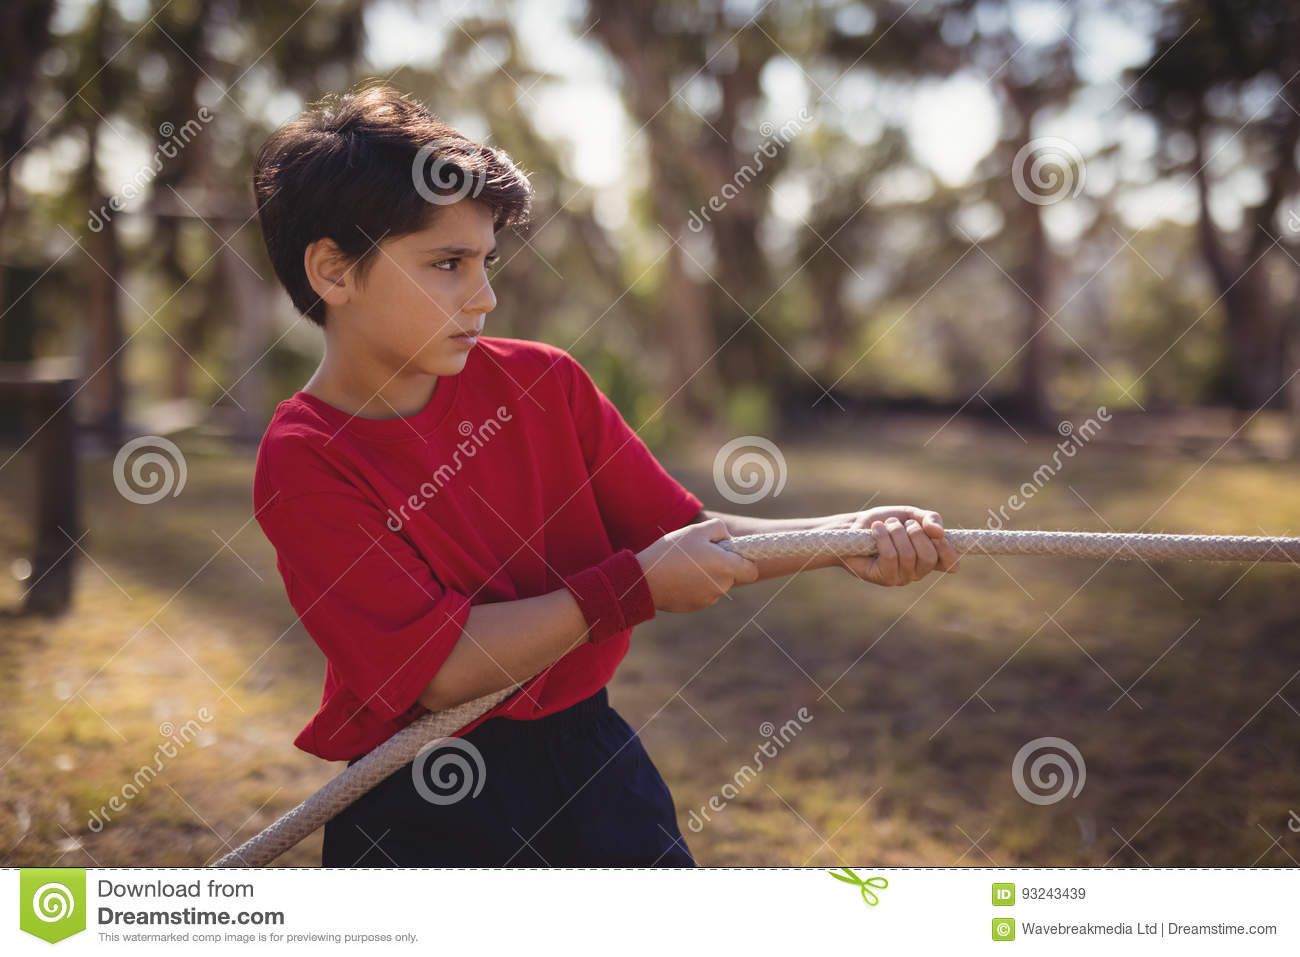 Determined boy practicing tug of war during obstacle course